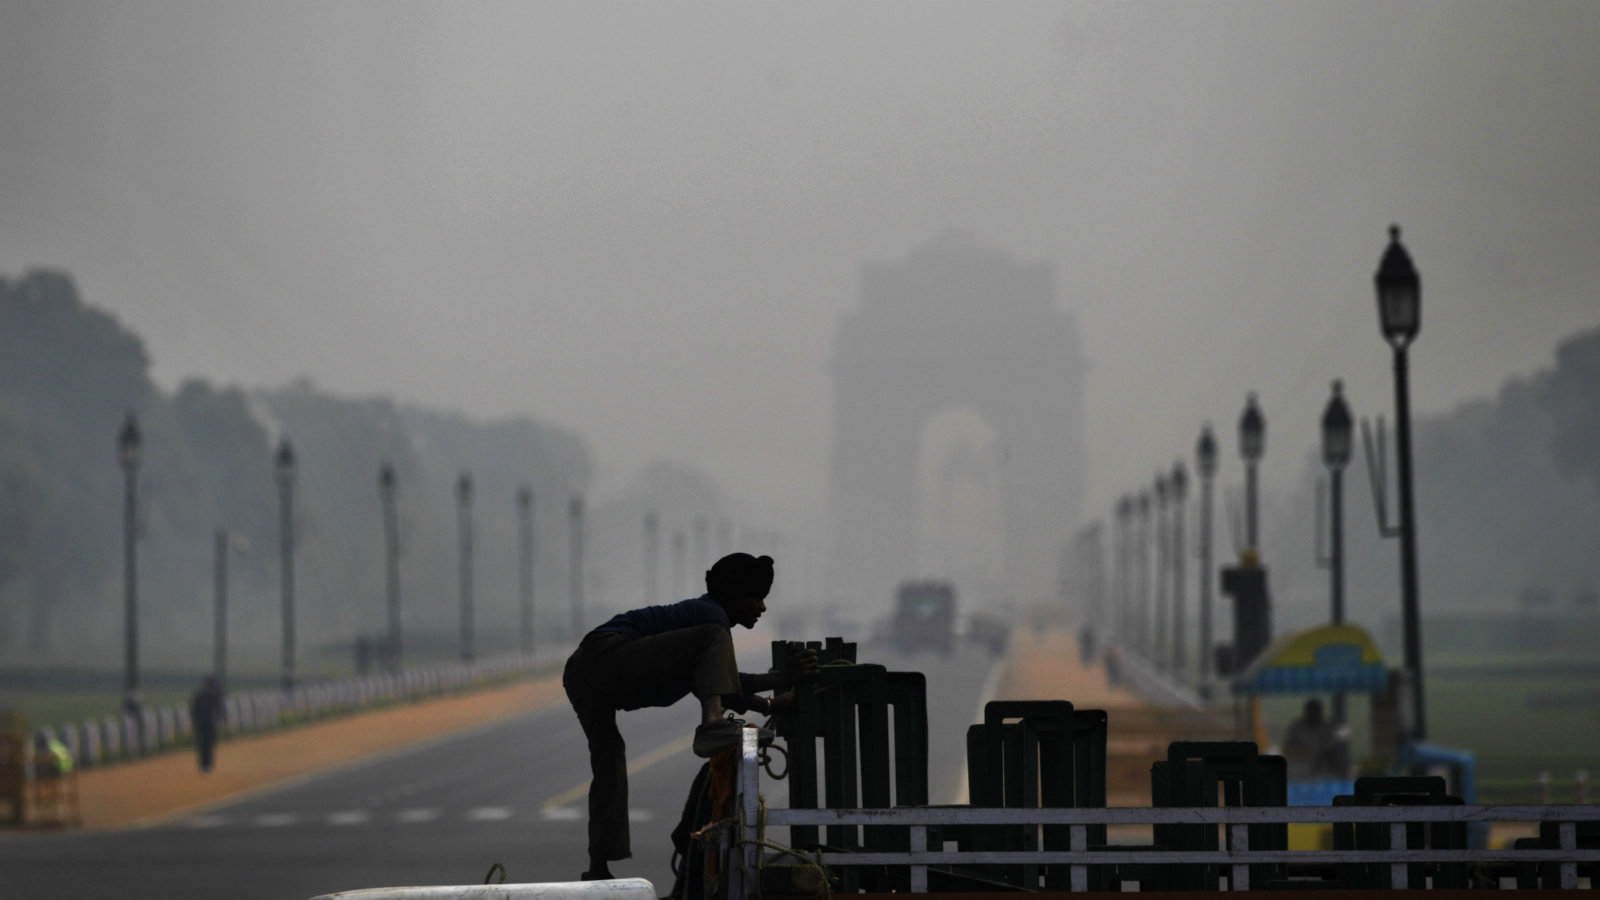 A worker unloads metal frames from a truck in front of the landmark India Gate monument enveloped by a blanket of smog, caused by a mixture of pollution and fog, in New Delhi, India, Thursday, Nov. 8, 2012. (AP Photo/Altaf Qadri)